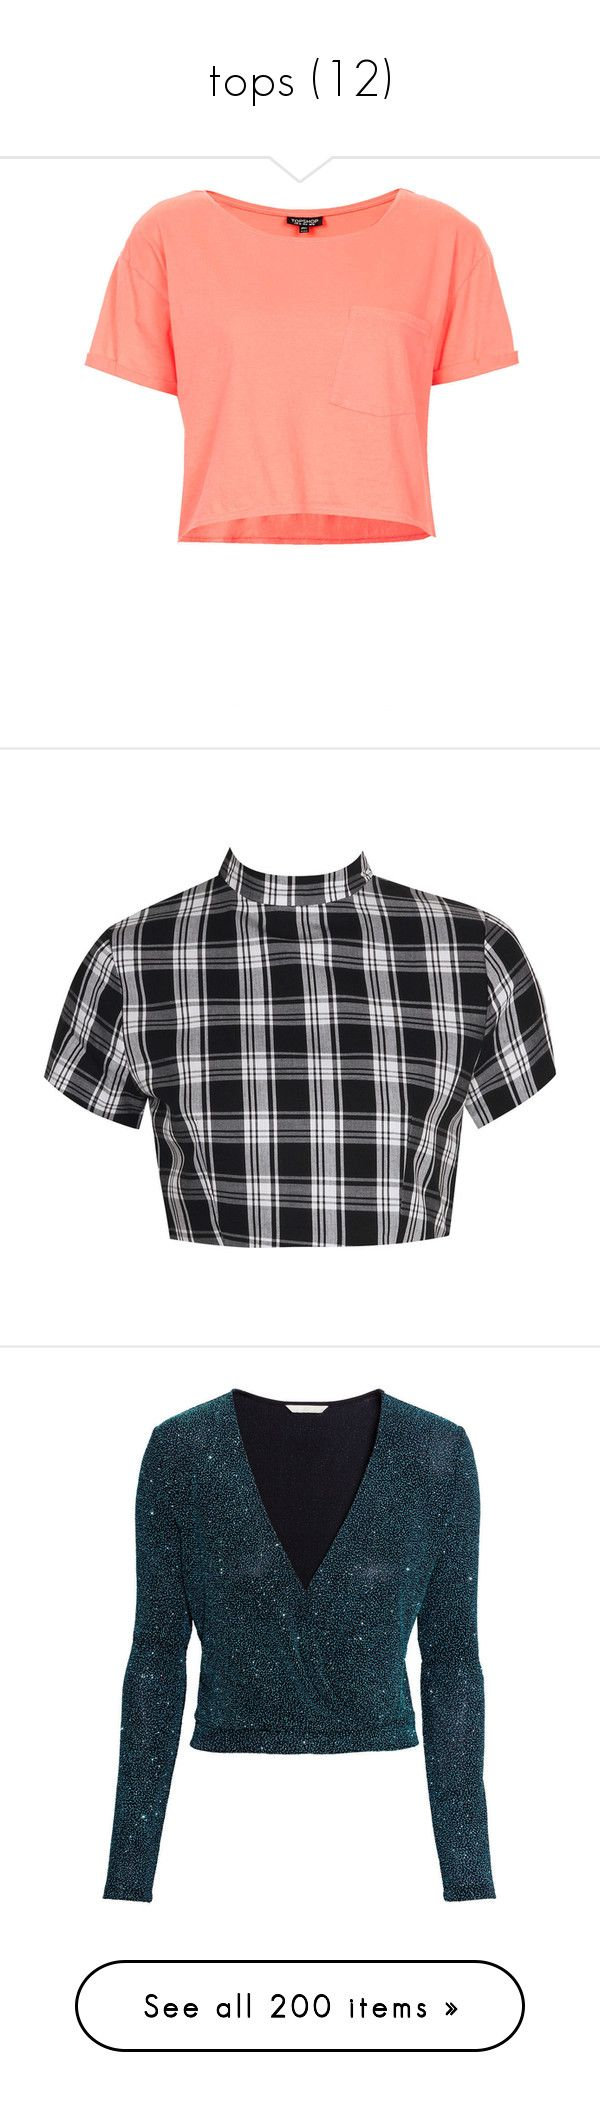 """""""tops (12)"""" by geniusmermaid on Polyvore featuring tops, t-shirts, shirts, crop tops, topshop, coral, crop t shirt, crop top, pocket t shirts and roll up sleeve shirt"""